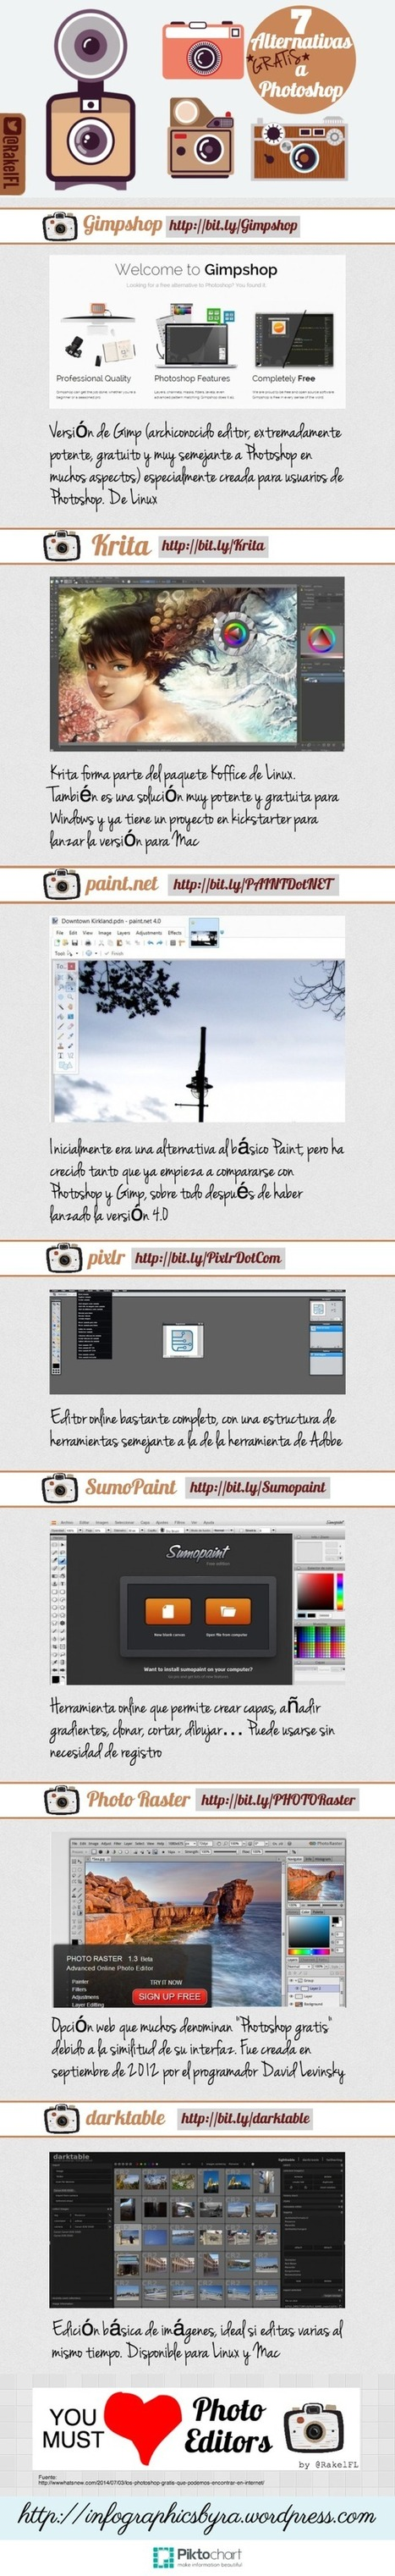 7 alternativas gratuitas a Photoshop #infografia #infgoraphic #design | Seo, Social Media Marketing | Scoop.it